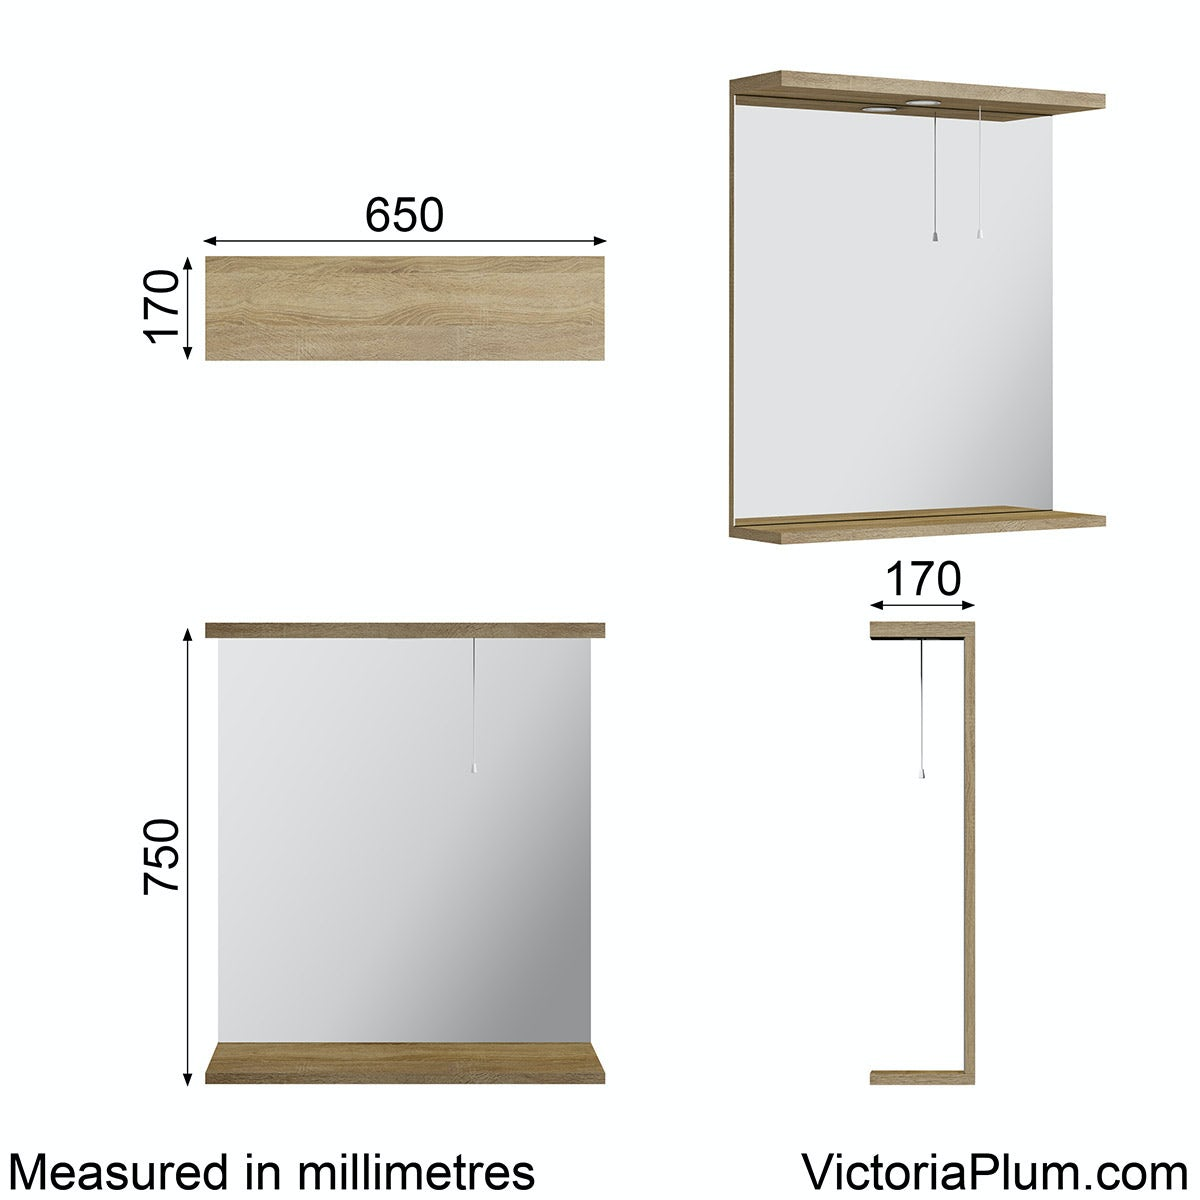 Dimensions for Sienna oak bathroom mirror with lights 650mm